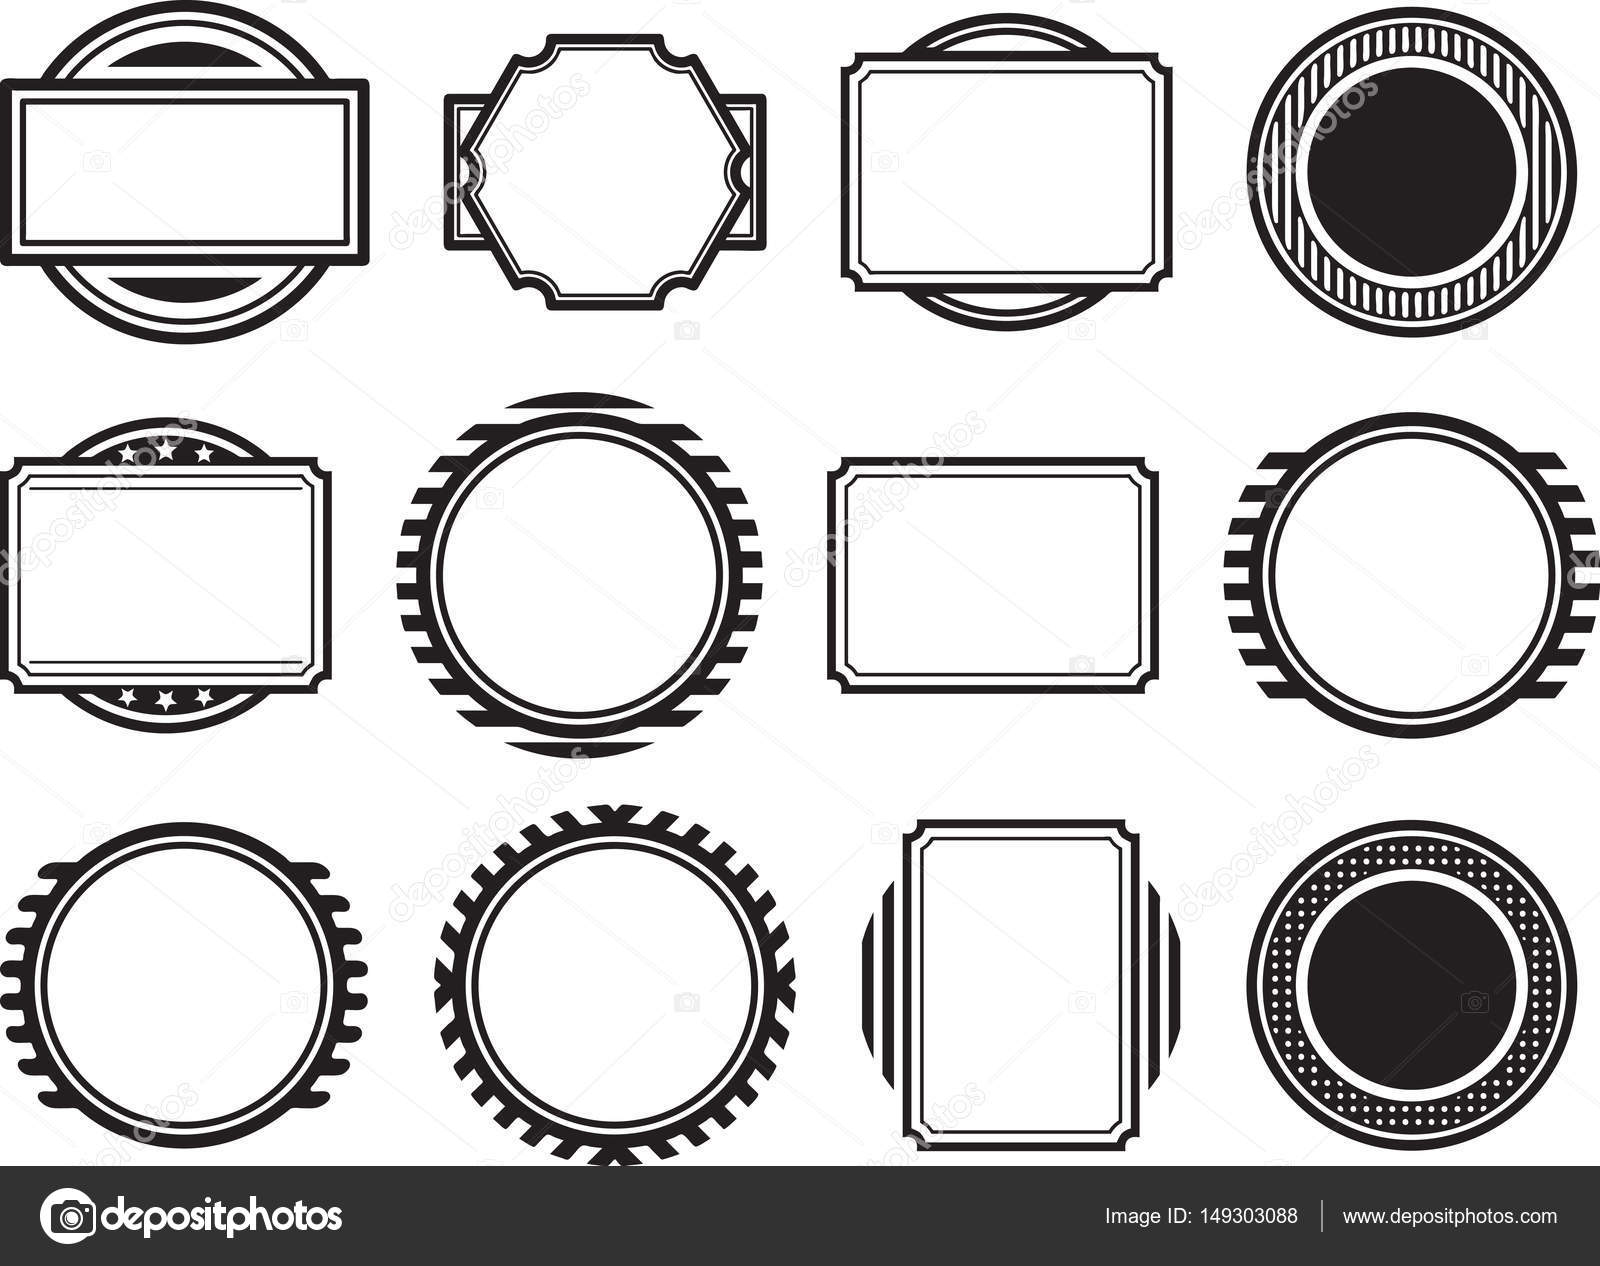 templates for rubber stamps stock vector antonshpak 149303088